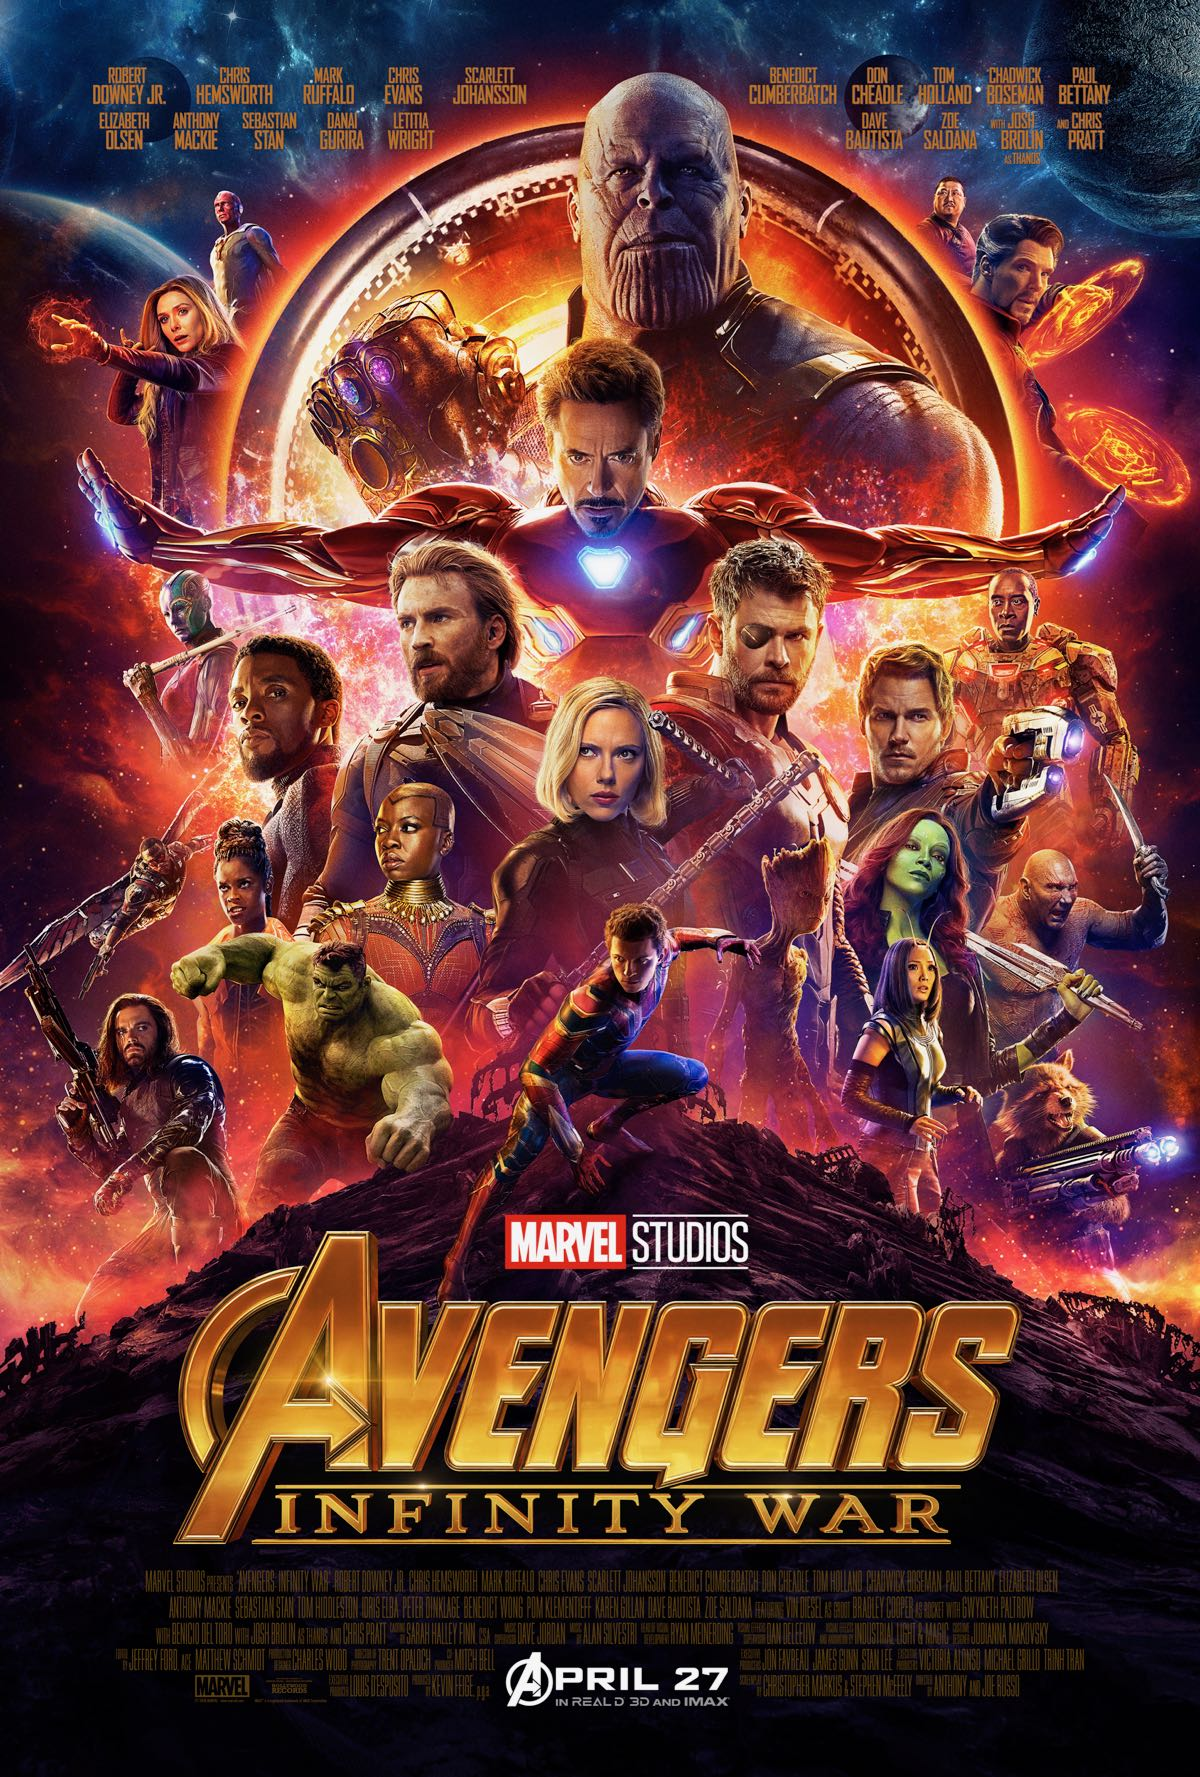 Avengers IW poster